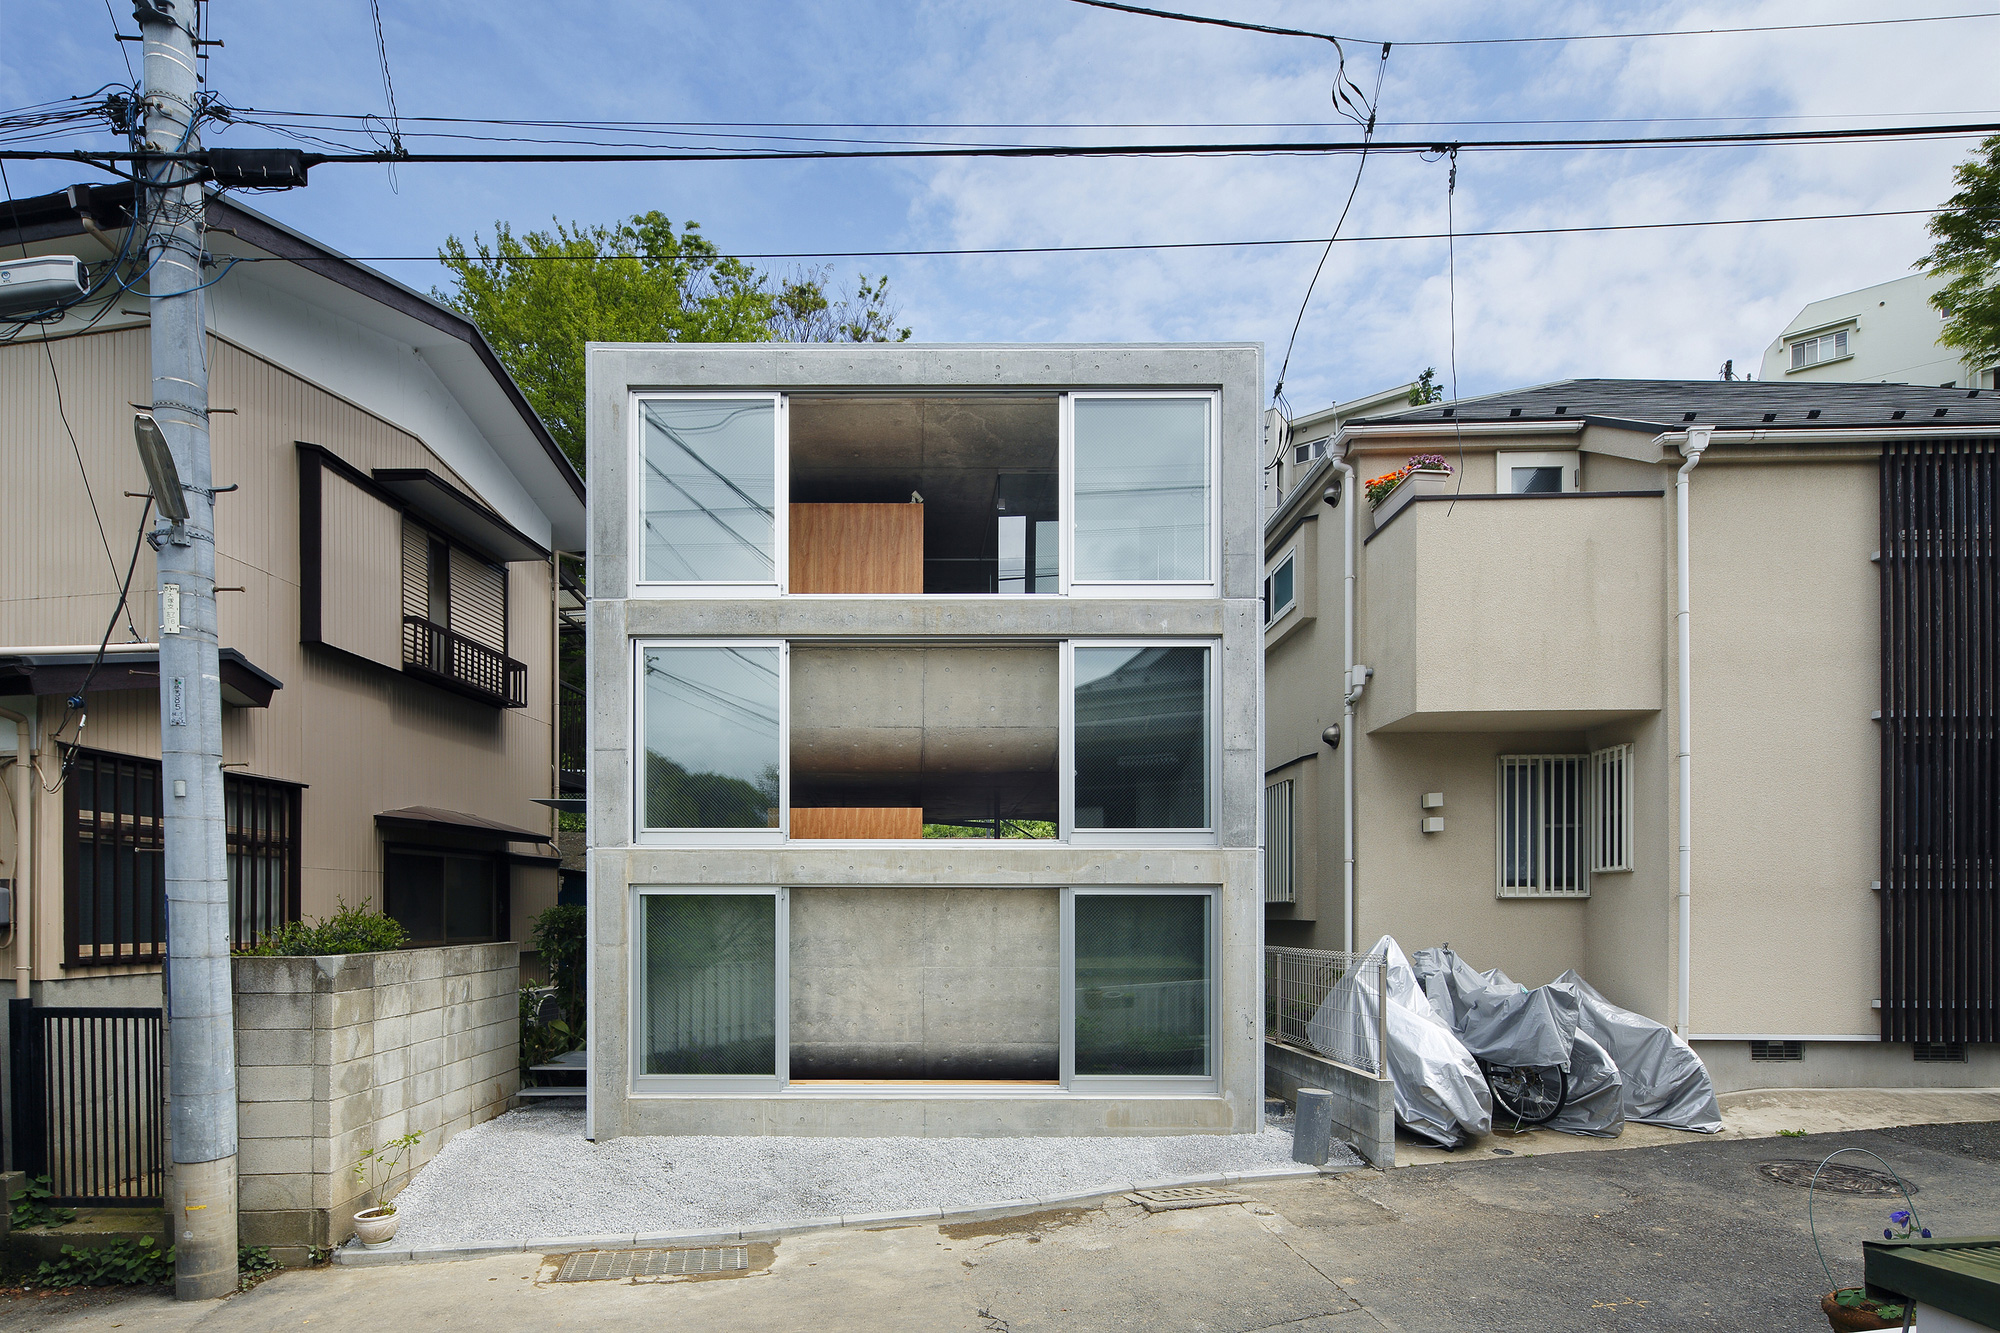 House in Byoubugaura / Takeshi Hosaka (29)